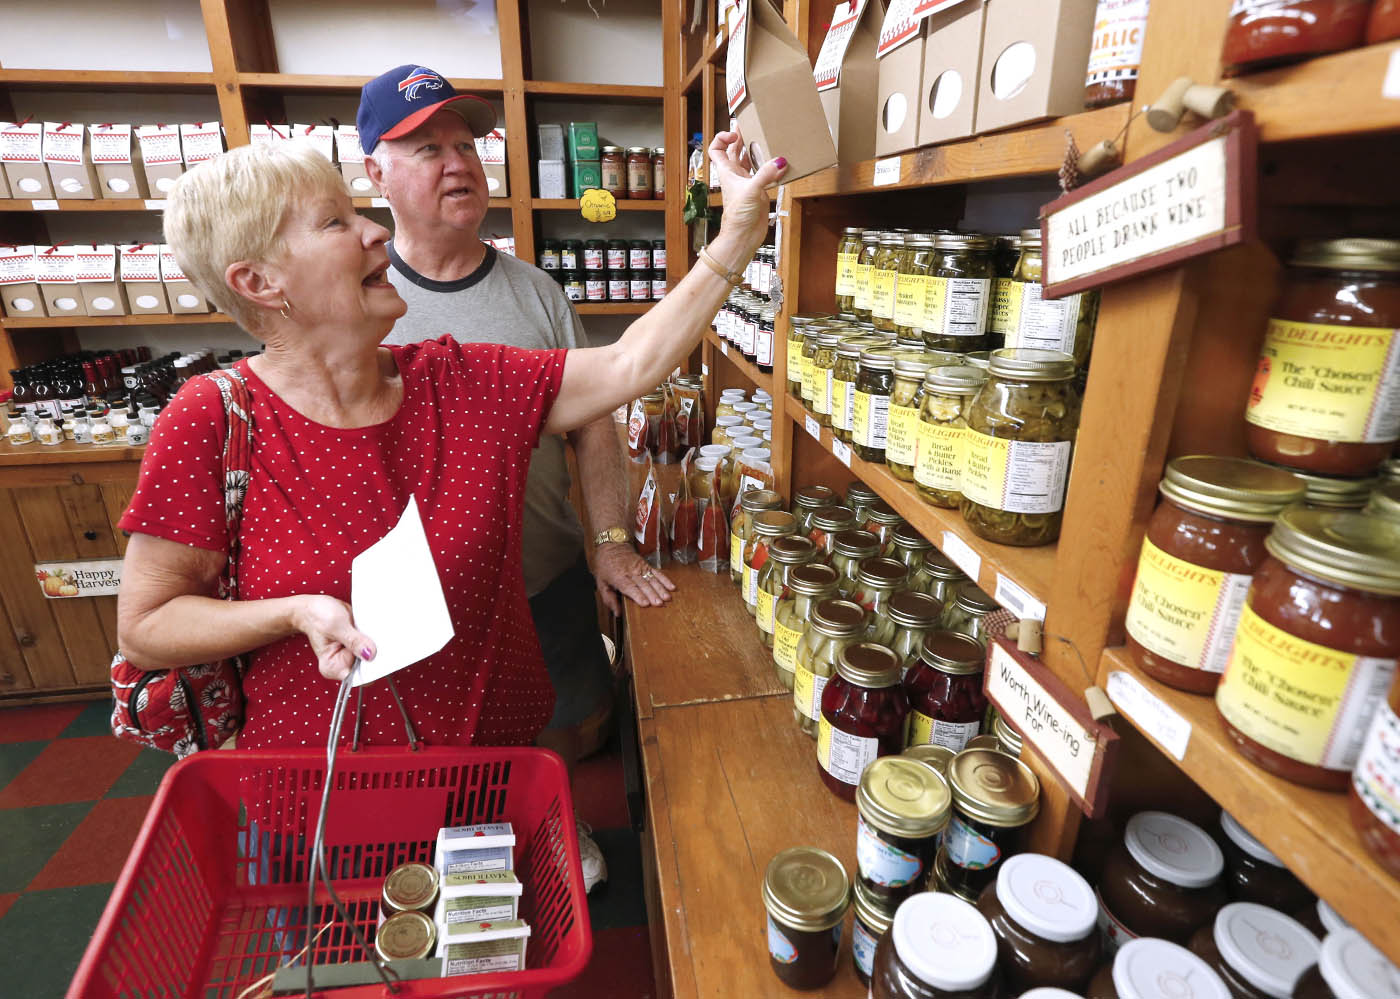 Bill and Mary McMahon of Boston, NY, had a list of their fall favorites. Enjoyed a look behind the scenes of the Mayer Brothers cider mill & bakery that has been delighting WNY customers for 164 years. Tuesday, Sept. 20, 2016. (Robert Kirkham/Buffalo News)